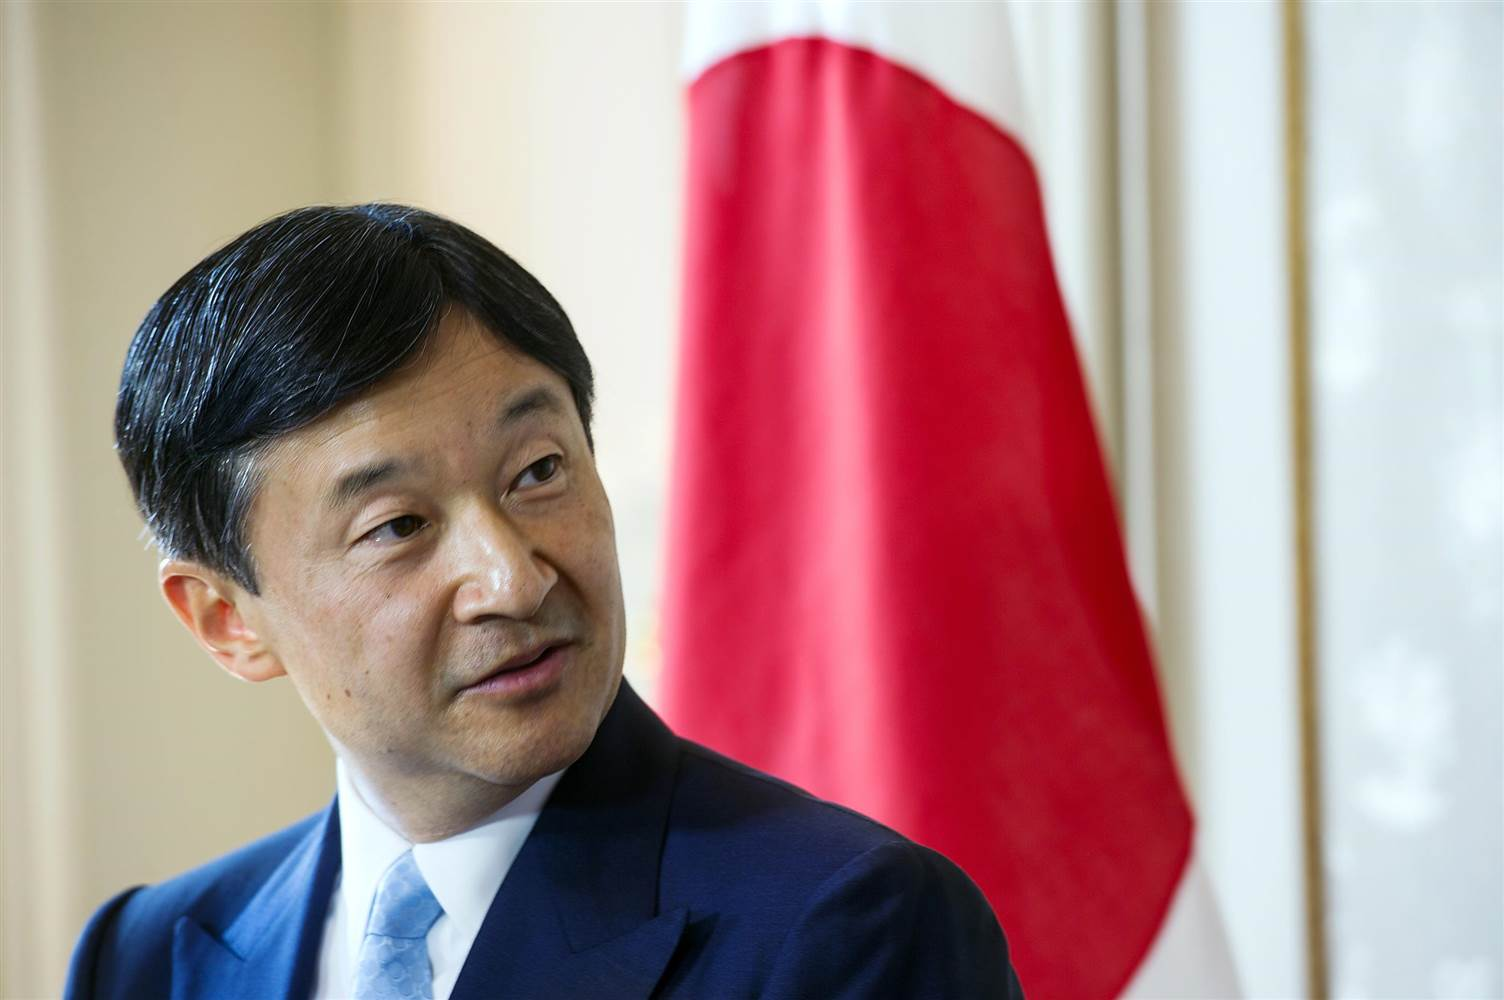 Naruhito, Japan's crown prince, would assume the Chrysanthemum Throne if his father Akihito were permitted to abdicate. (Sebastien Bozon / AFP - Getty)